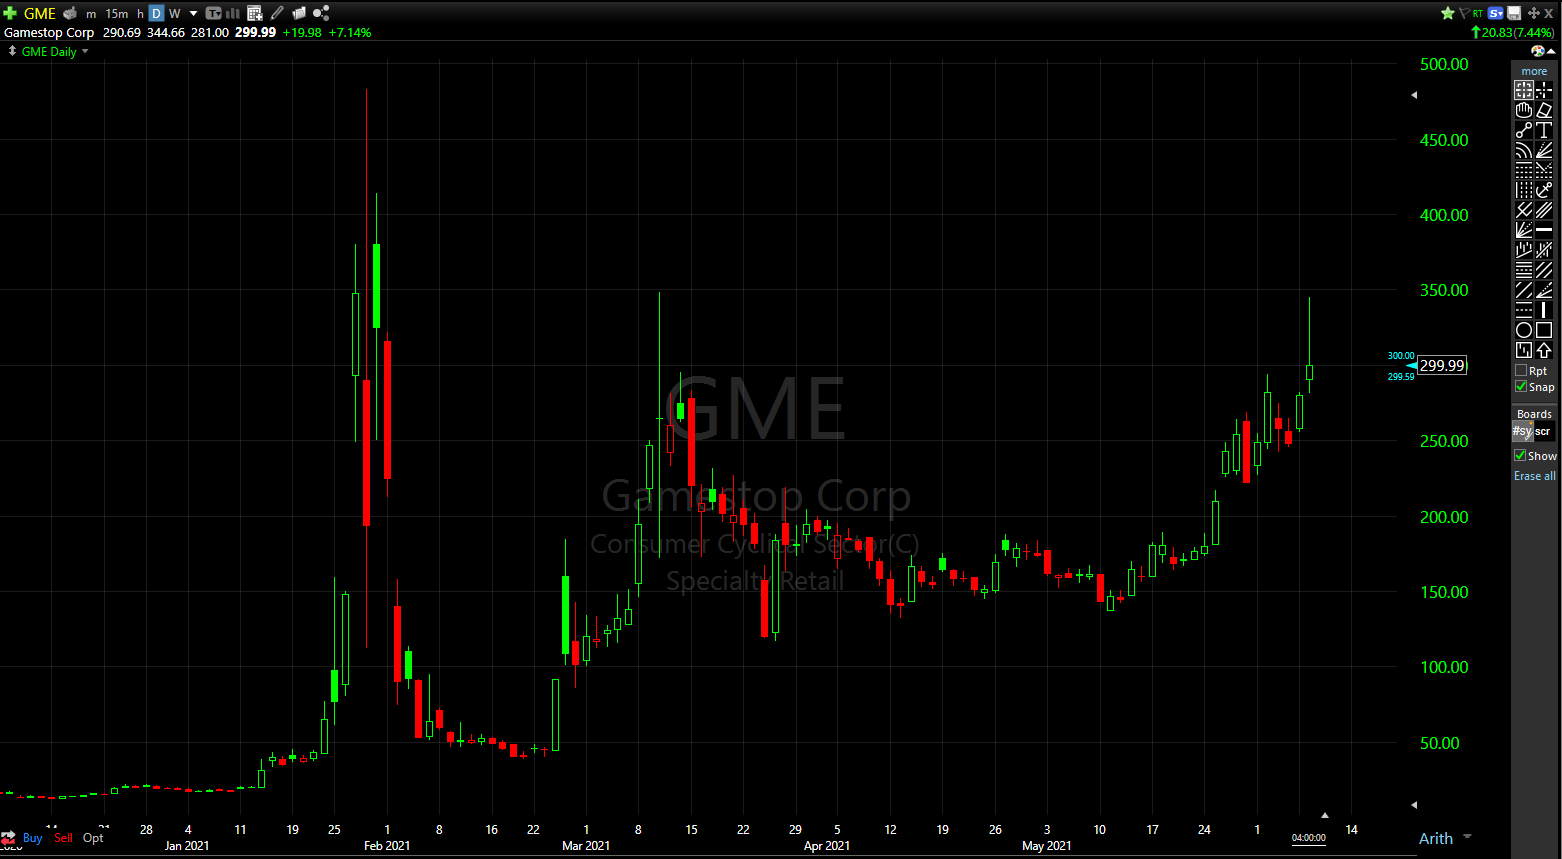 GME shares closed right at the big round number that is $300/share today.